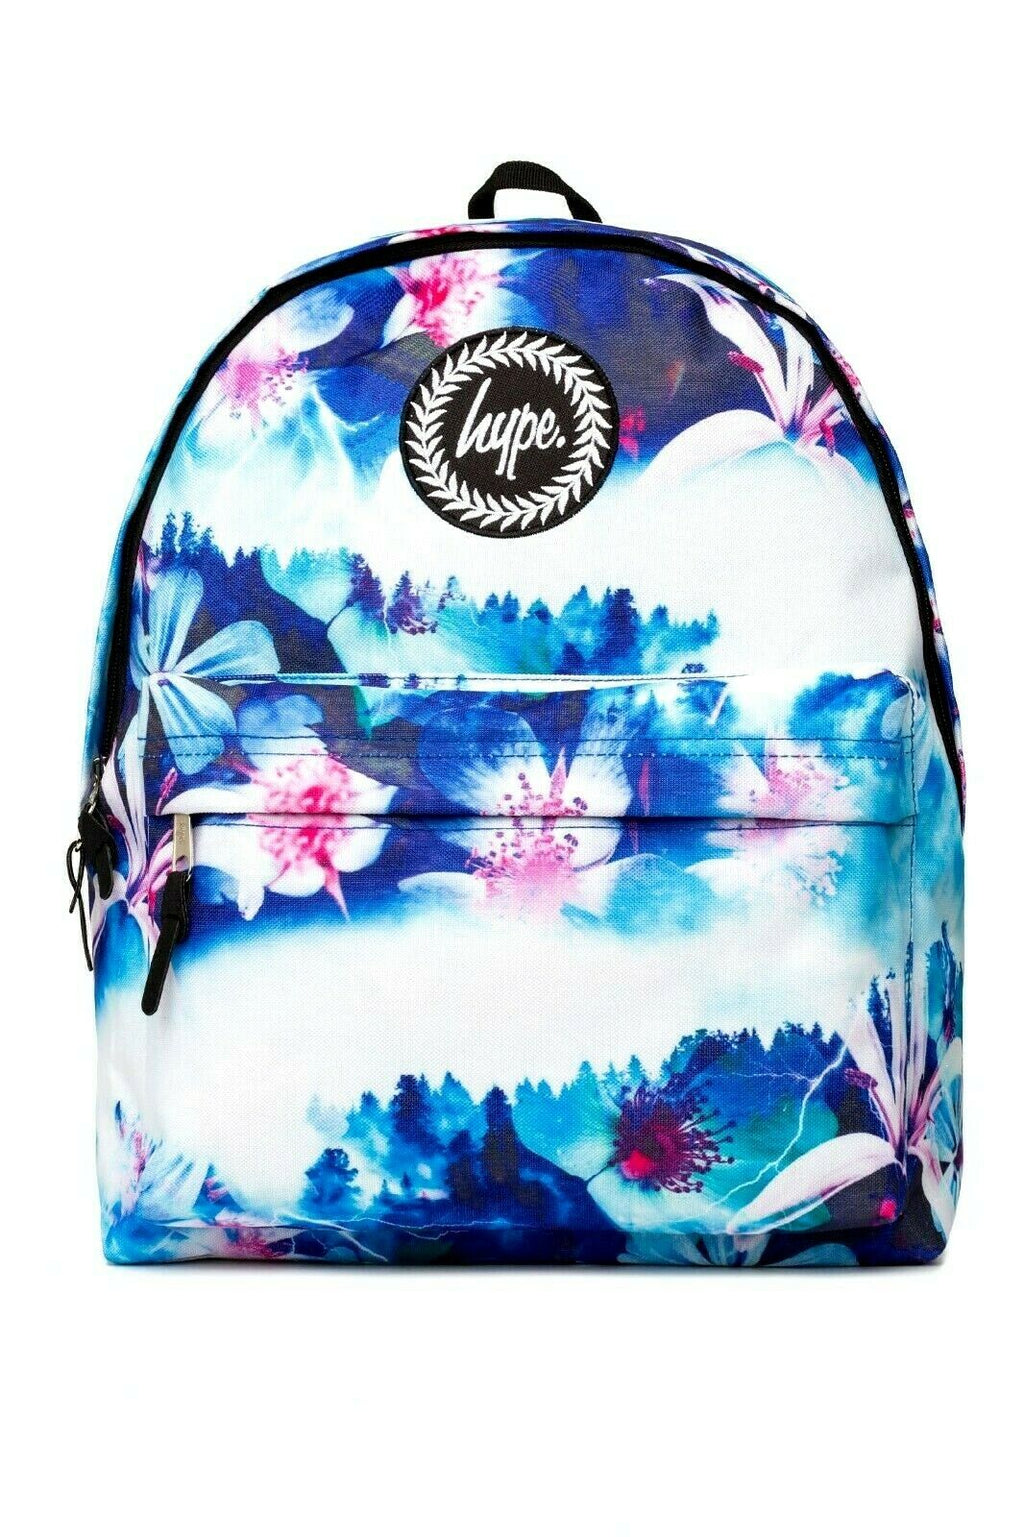 HYPE FLOWERS ON ICE BACKPACK RUCKSACK BAG - MULTI